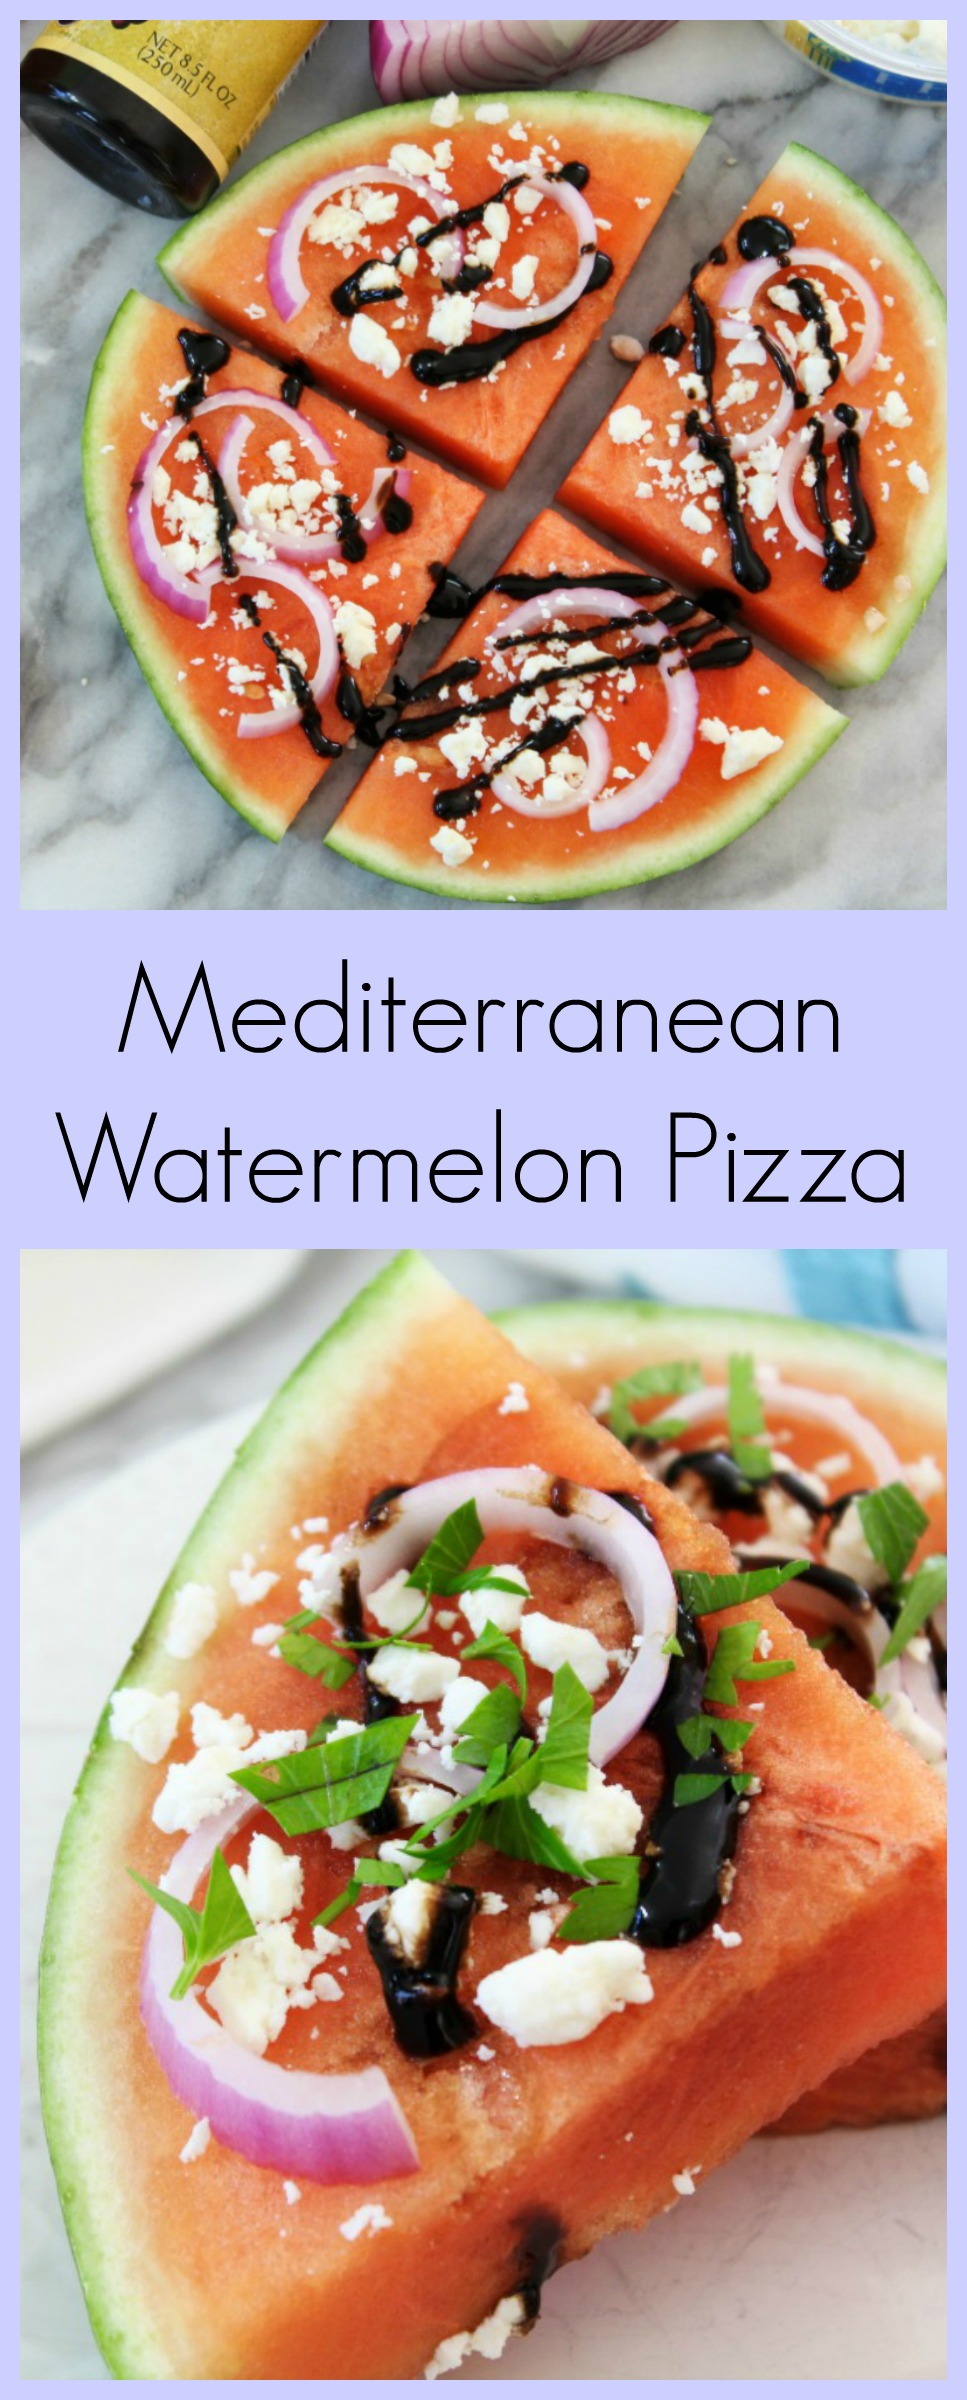 Mediterranean Watermelon Pizza